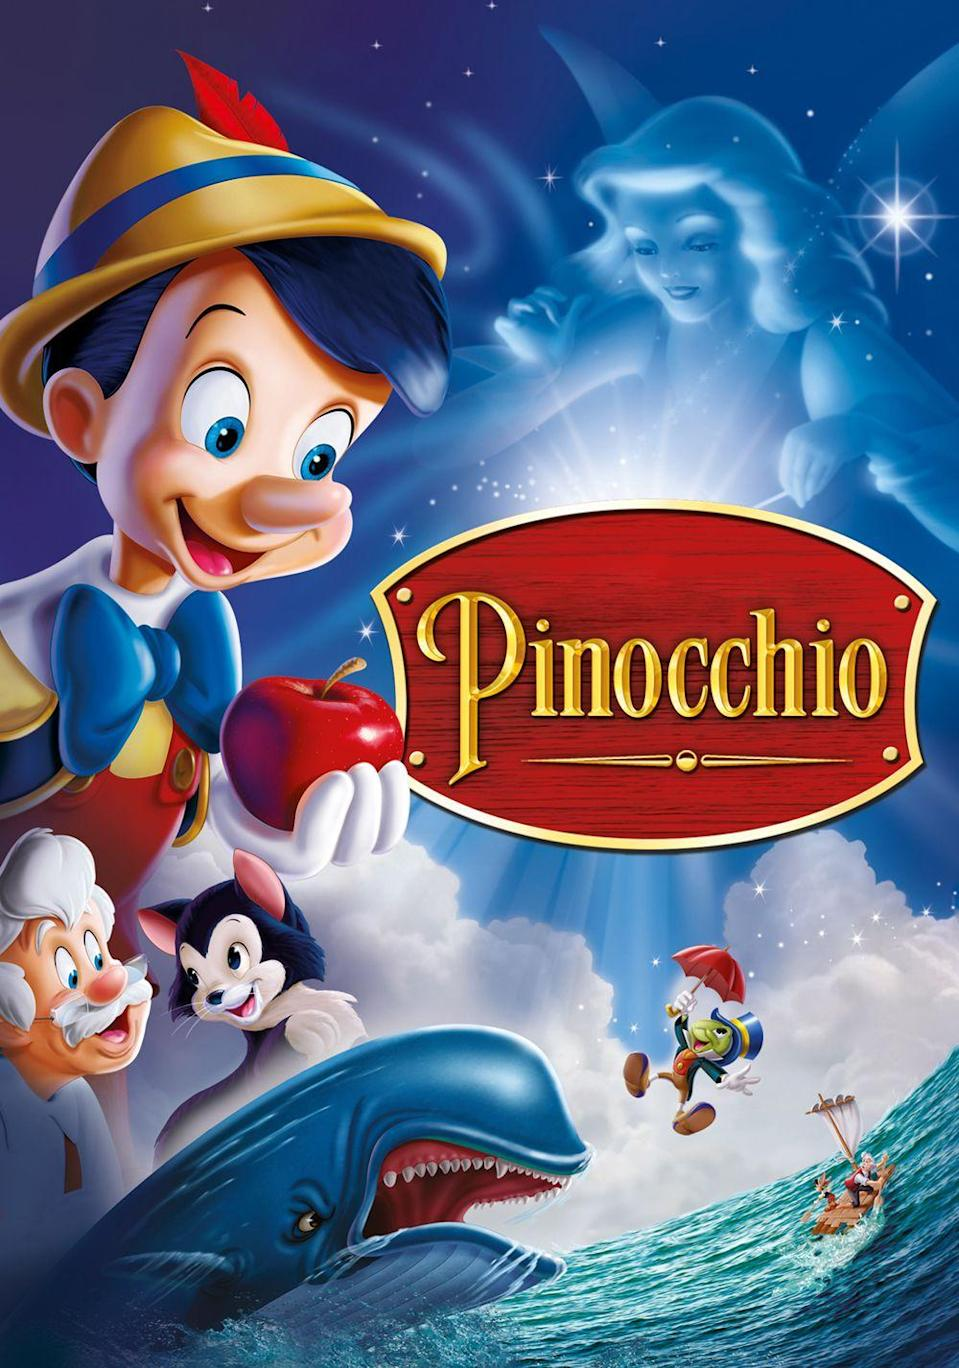 """<p>Pinocchio will also be getting the live-action remake treatment. <em>Paddington </em>director Paul King will be directing the film, while <em>Rogue One</em> screenwriter Chirs Weitz will be producing. Tom Hanks, who also voices Woody in <em>Toy Story</em>, is in talks to play Geppetto, according to <em><a href=""""http://collider.com/tom-hanks-pinocchio-geppetto/"""" rel=""""nofollow noopener"""" target=""""_blank"""" data-ylk=""""slk:Collider"""" class=""""link rapid-noclick-resp"""">Collider</a></em>. If this story is true, then it's safe to say that the movie will get you right in the feels just like the original. </p><p><a href=""""https://deadline.com/2020/01/pinocchio-robert-zemeckis-to-direct-1202840440/"""" rel=""""nofollow noopener"""" target=""""_blank"""" data-ylk=""""slk:Deadline says"""" class=""""link rapid-noclick-resp""""><em>Deadline</em> says</a> that there's no release date yet, but that """"Disney has several dates reserved for untitled live-action features."""" Each of these dates span 2021-2013.</p><p><a class=""""link rapid-noclick-resp"""" href=""""https://www.amazon.com/dp/B01MXL054Q?tag=syn-yahoo-20&ascsubtag=%5Bartid%7C10065.g.2936%5Bsrc%7Cyahoo-us"""" rel=""""nofollow noopener"""" target=""""_blank"""" data-ylk=""""slk:Watch the Original"""">Watch the Original</a></p>"""